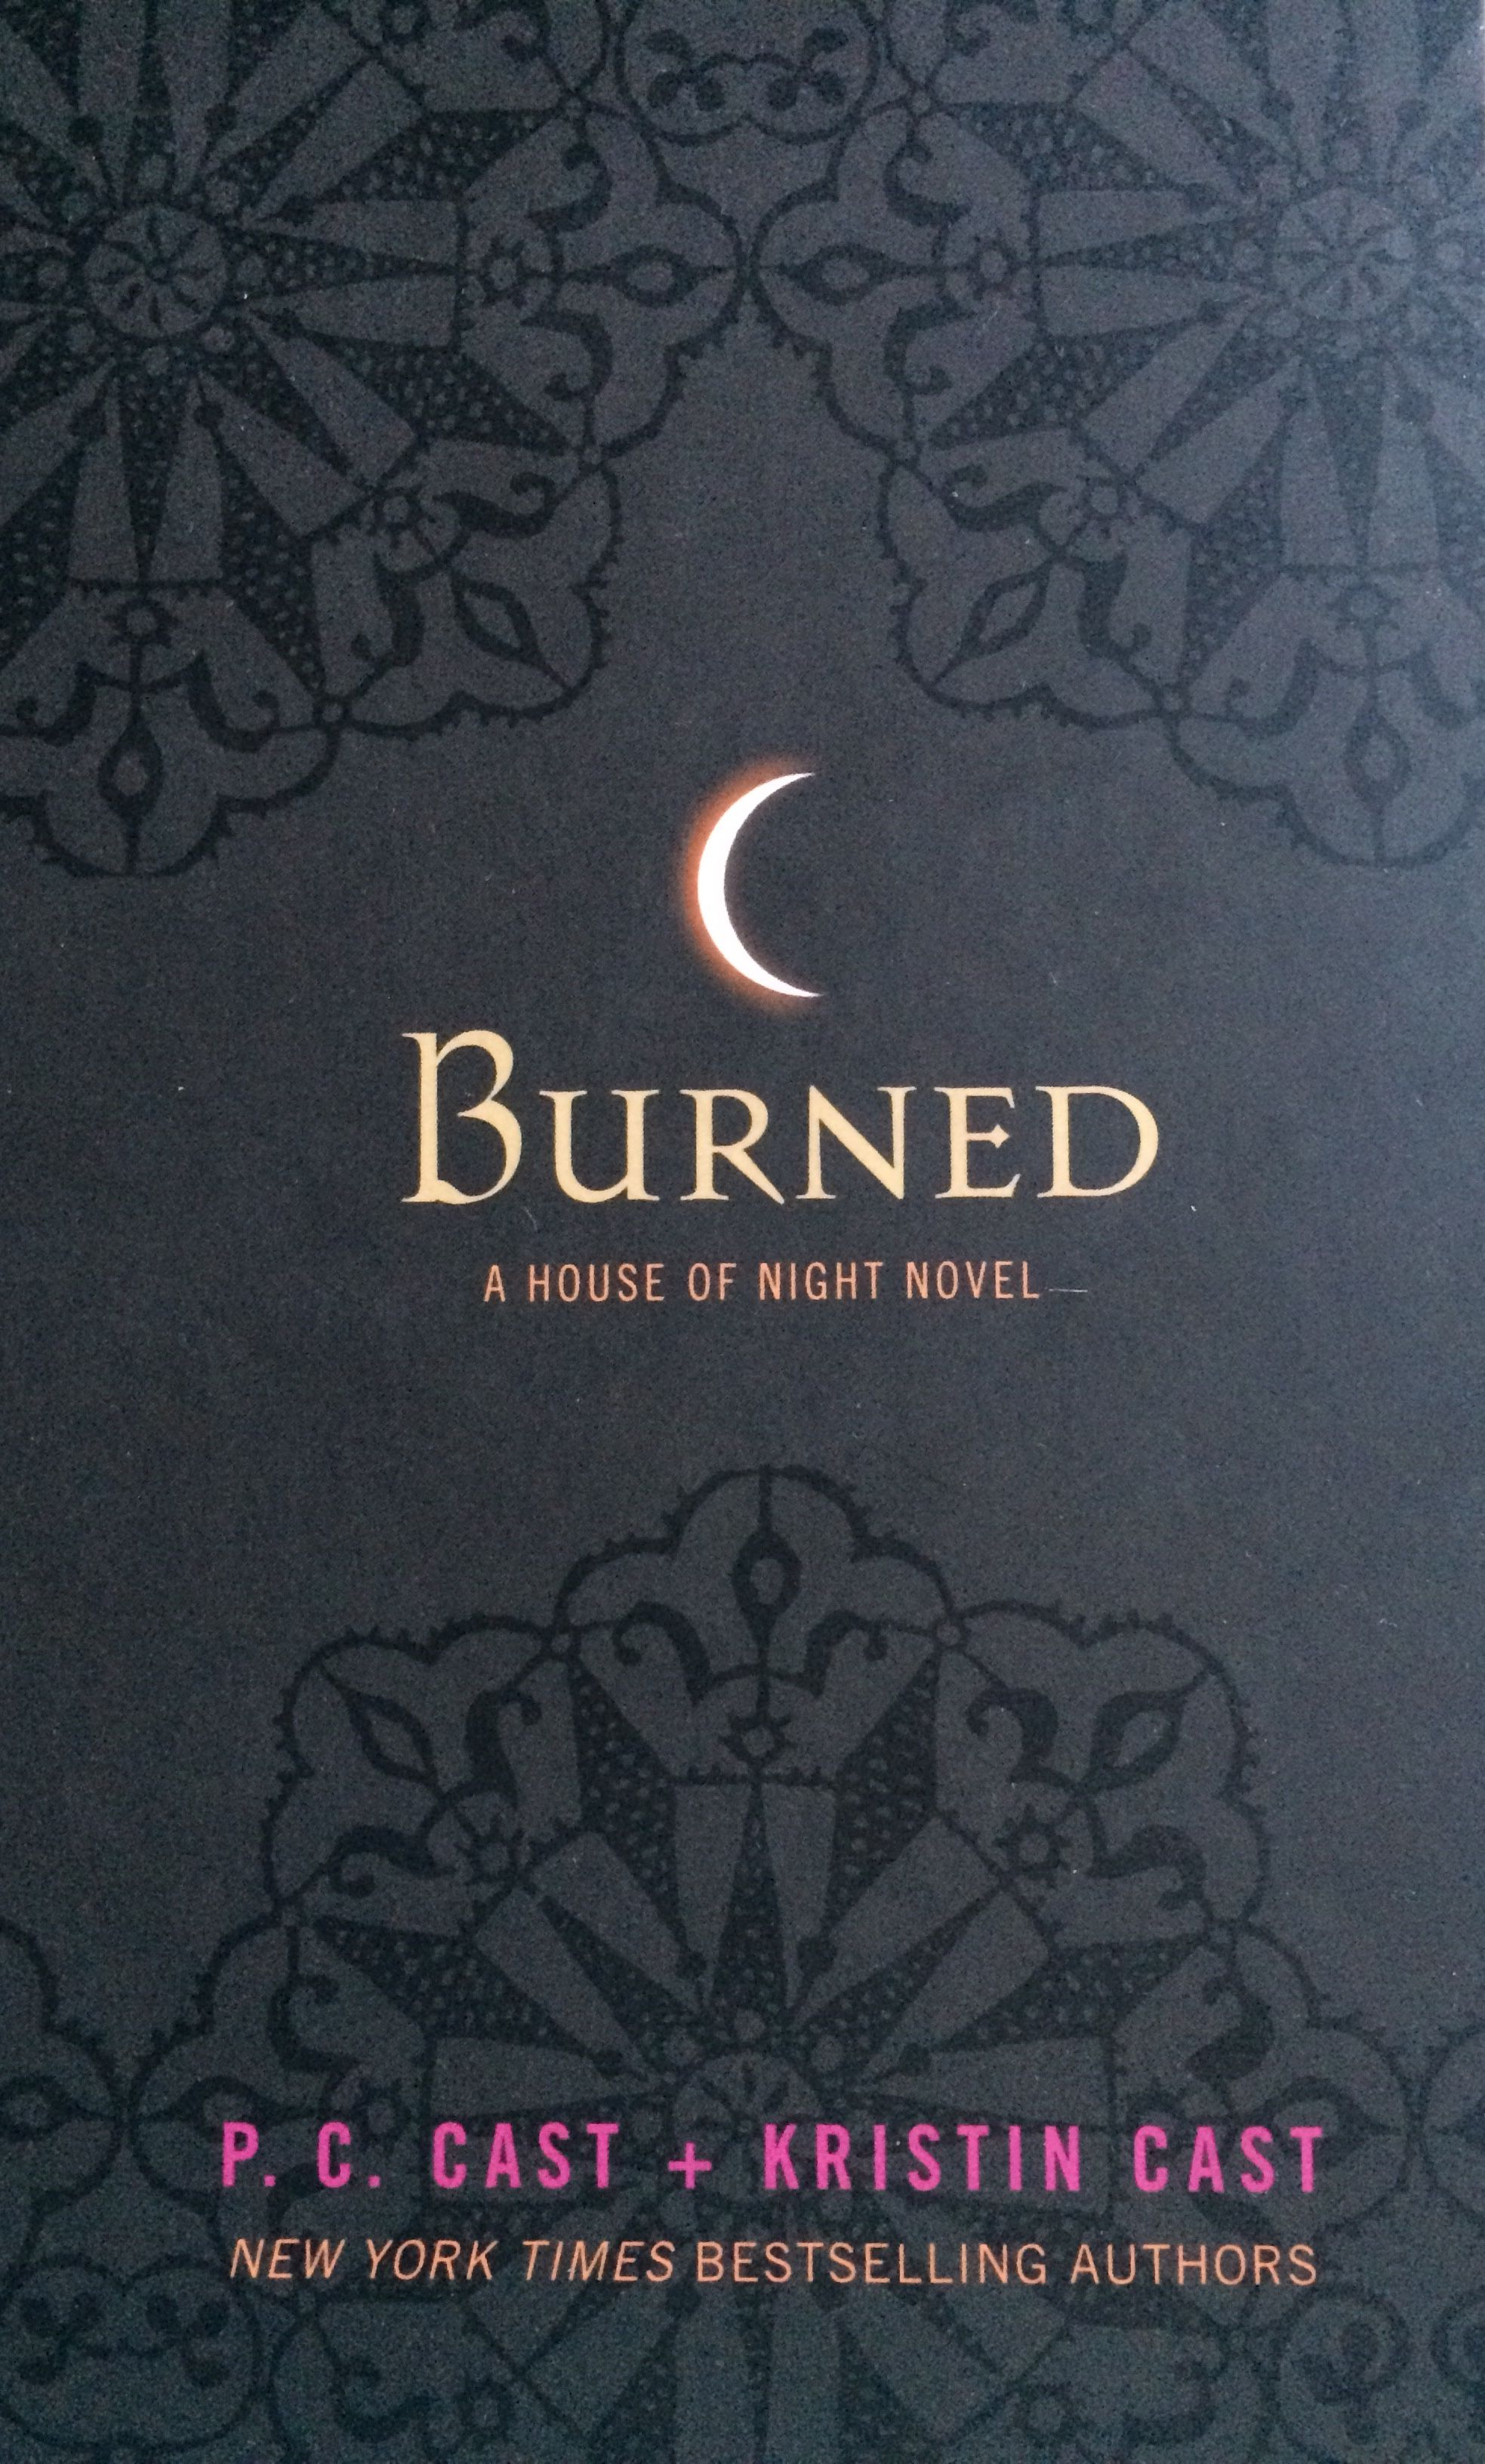 Burned (House of Night #7) by P.C. and Kristin Cast